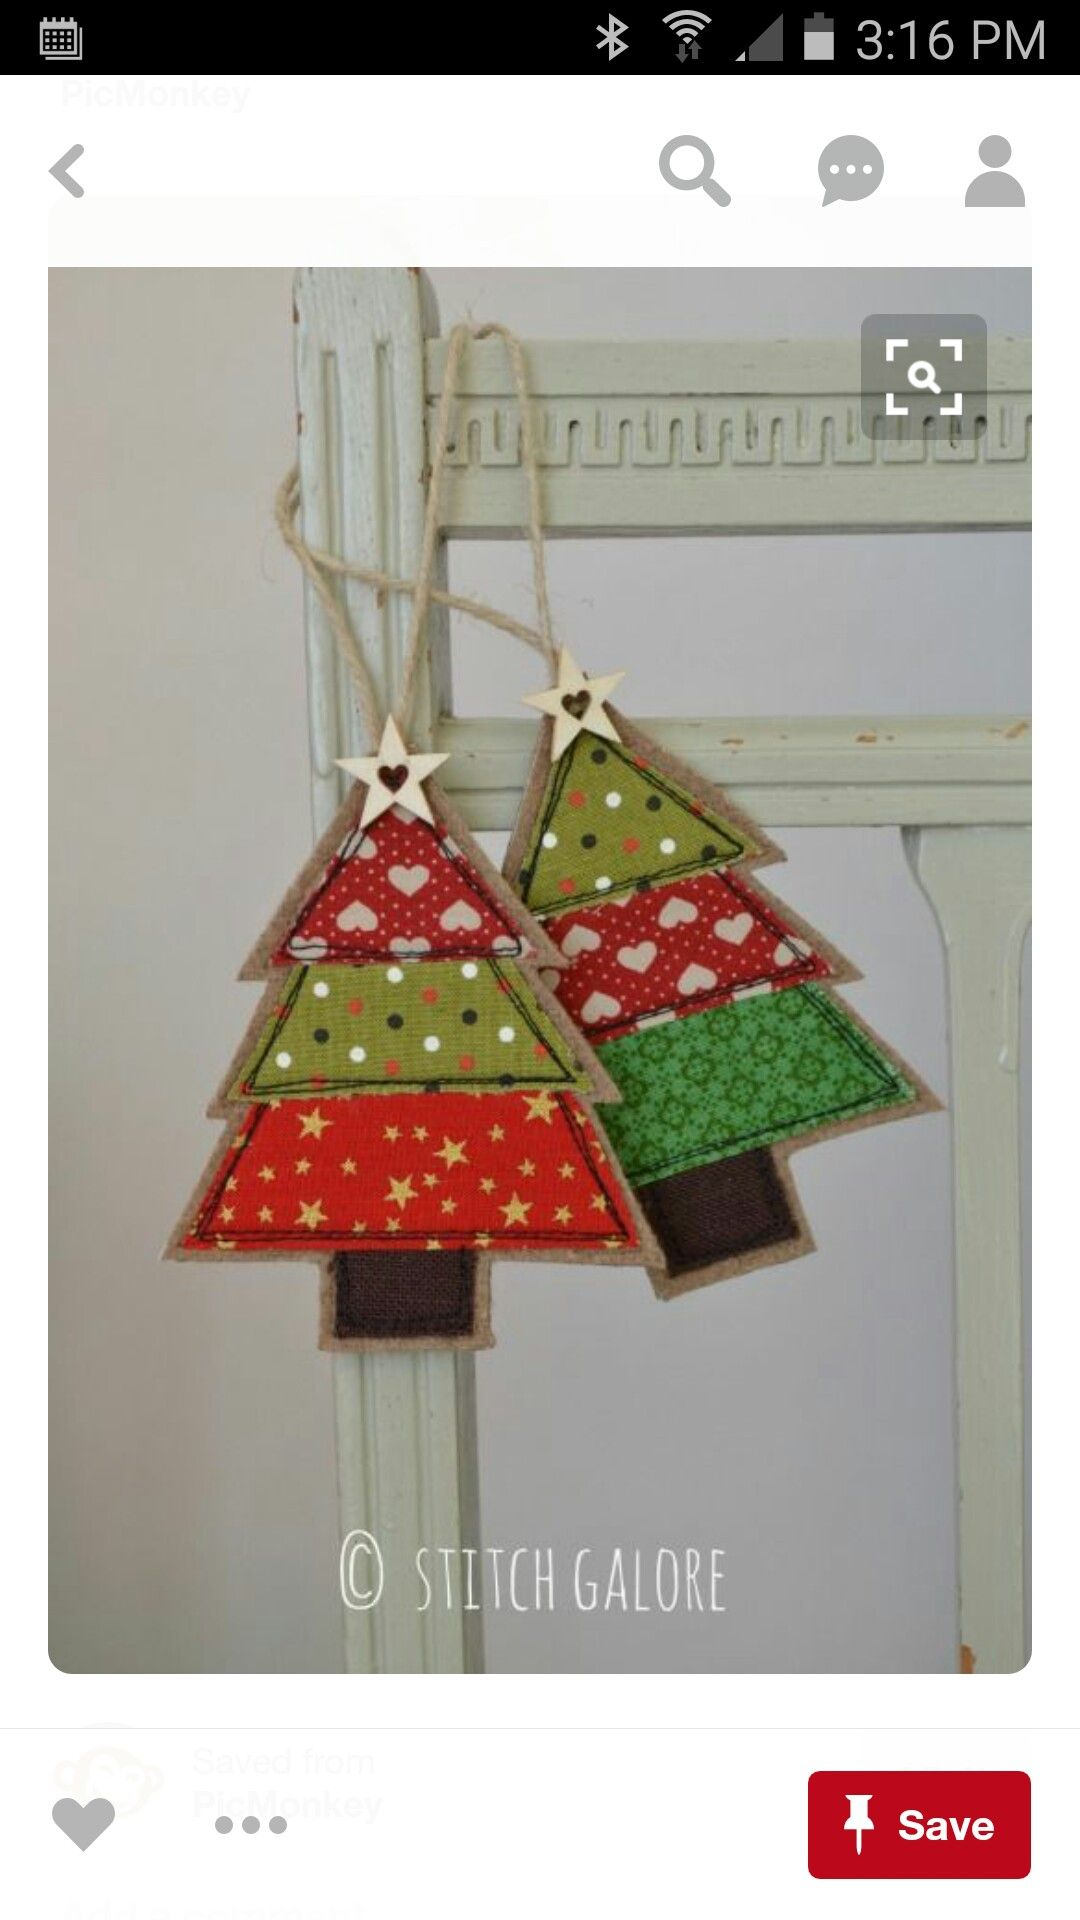 Pin by Julia Shearer-East on Ornaments and Ideas | Pinterest ...